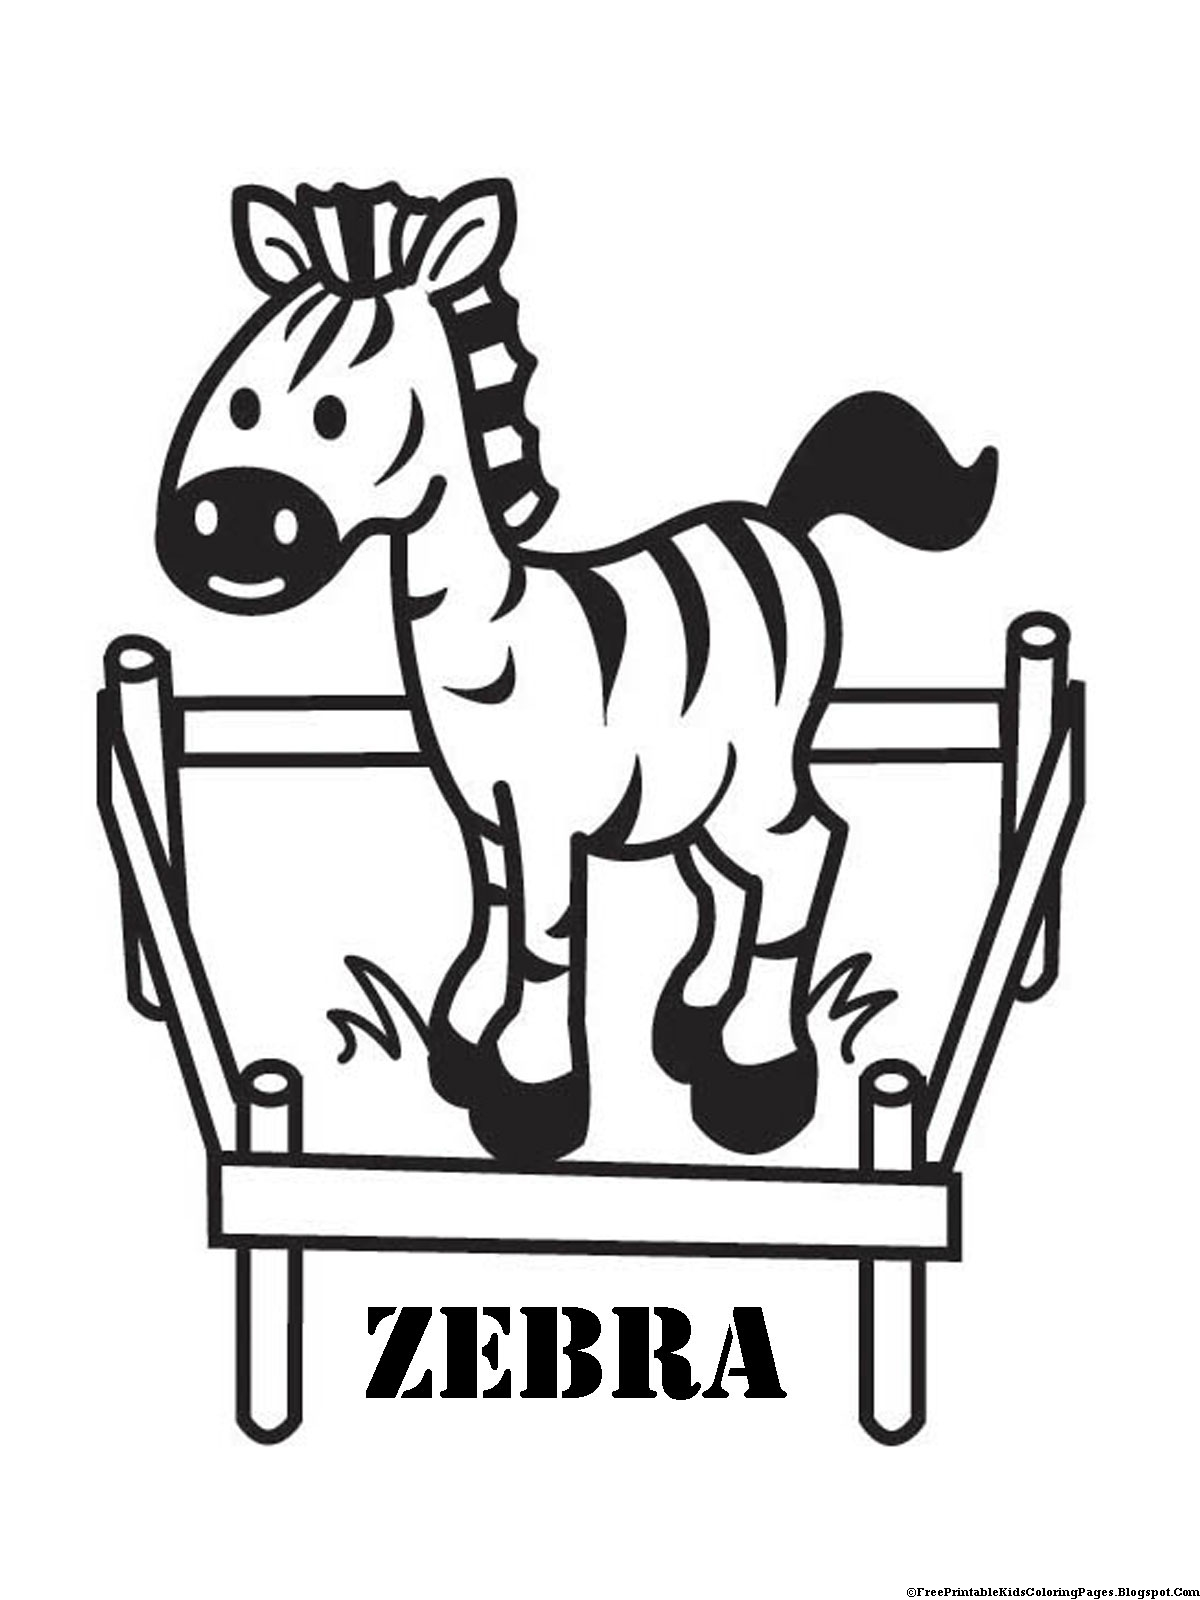 Printable coloring pictures of zebras - Printable Coloring Pictures Of Zebras Small Pizza Slice 183 Httpbecuocomjoseline Hernandez Before And